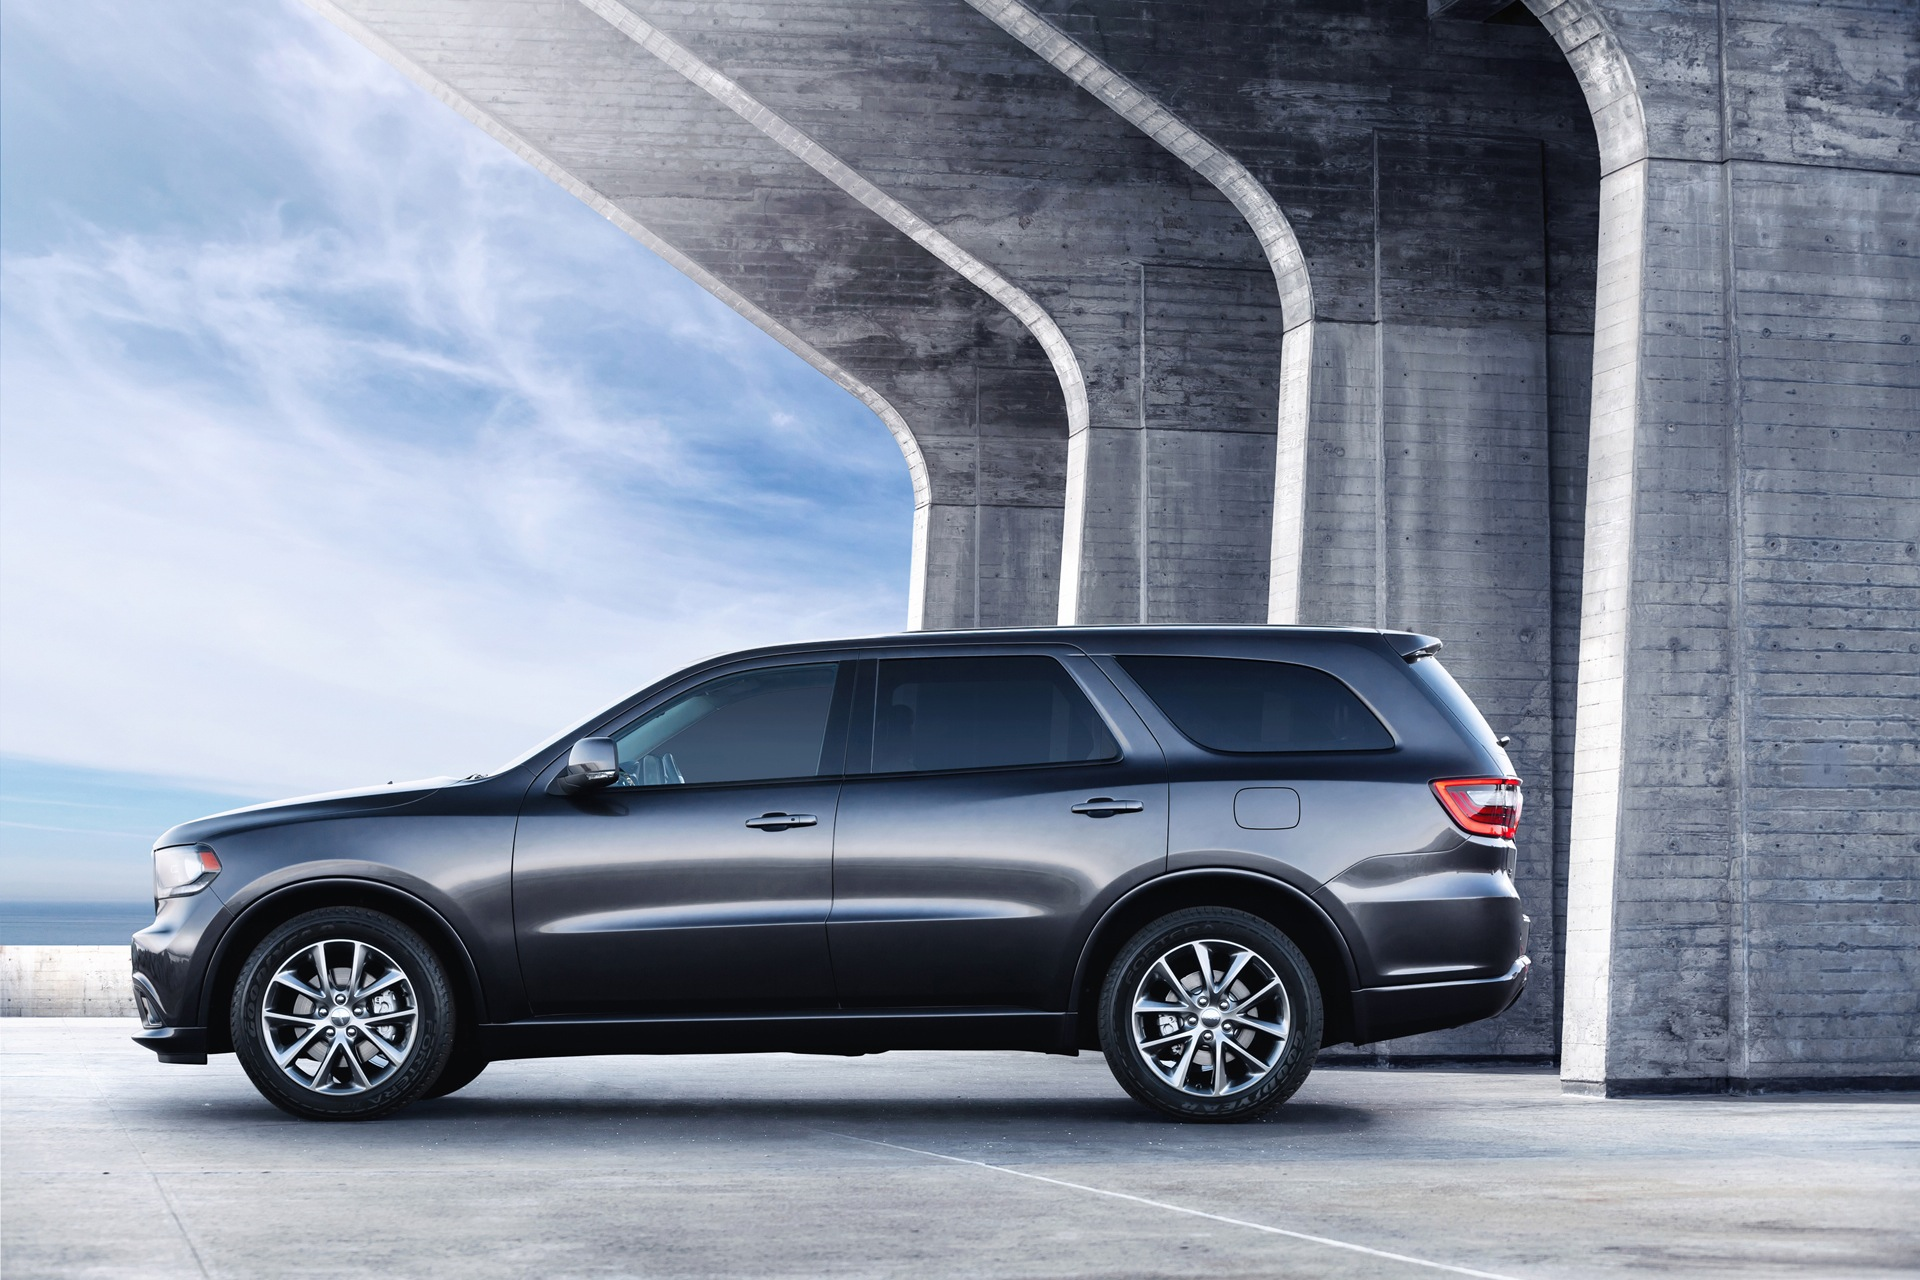 Brown Toyota Charlottesville >> 2014 Dodge Durango Review, Ratings, Specs, Prices, and Photos - The Car Connection